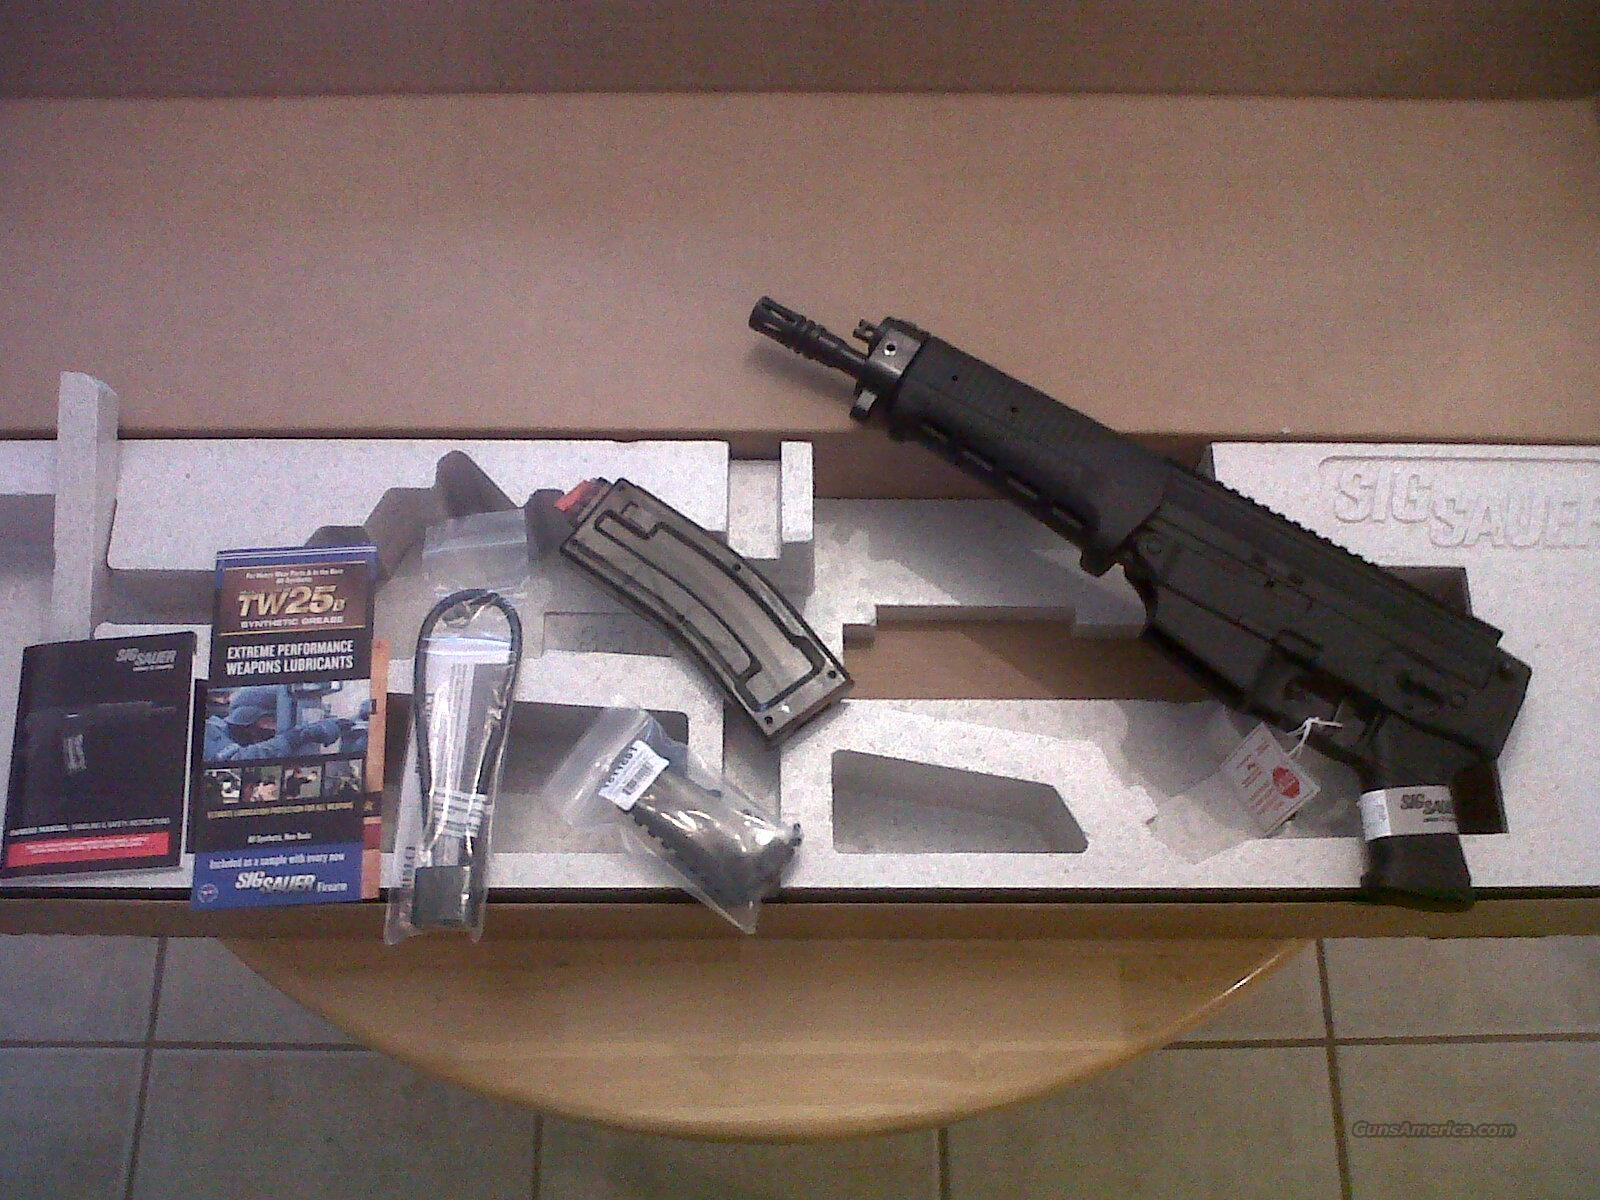 SIG SAUER P-522 tactical pistol with hi cap magazine brand new ar15 ar10,ak47  Guns > Pistols > Sig - Sauer/Sigarms Pistols > Other